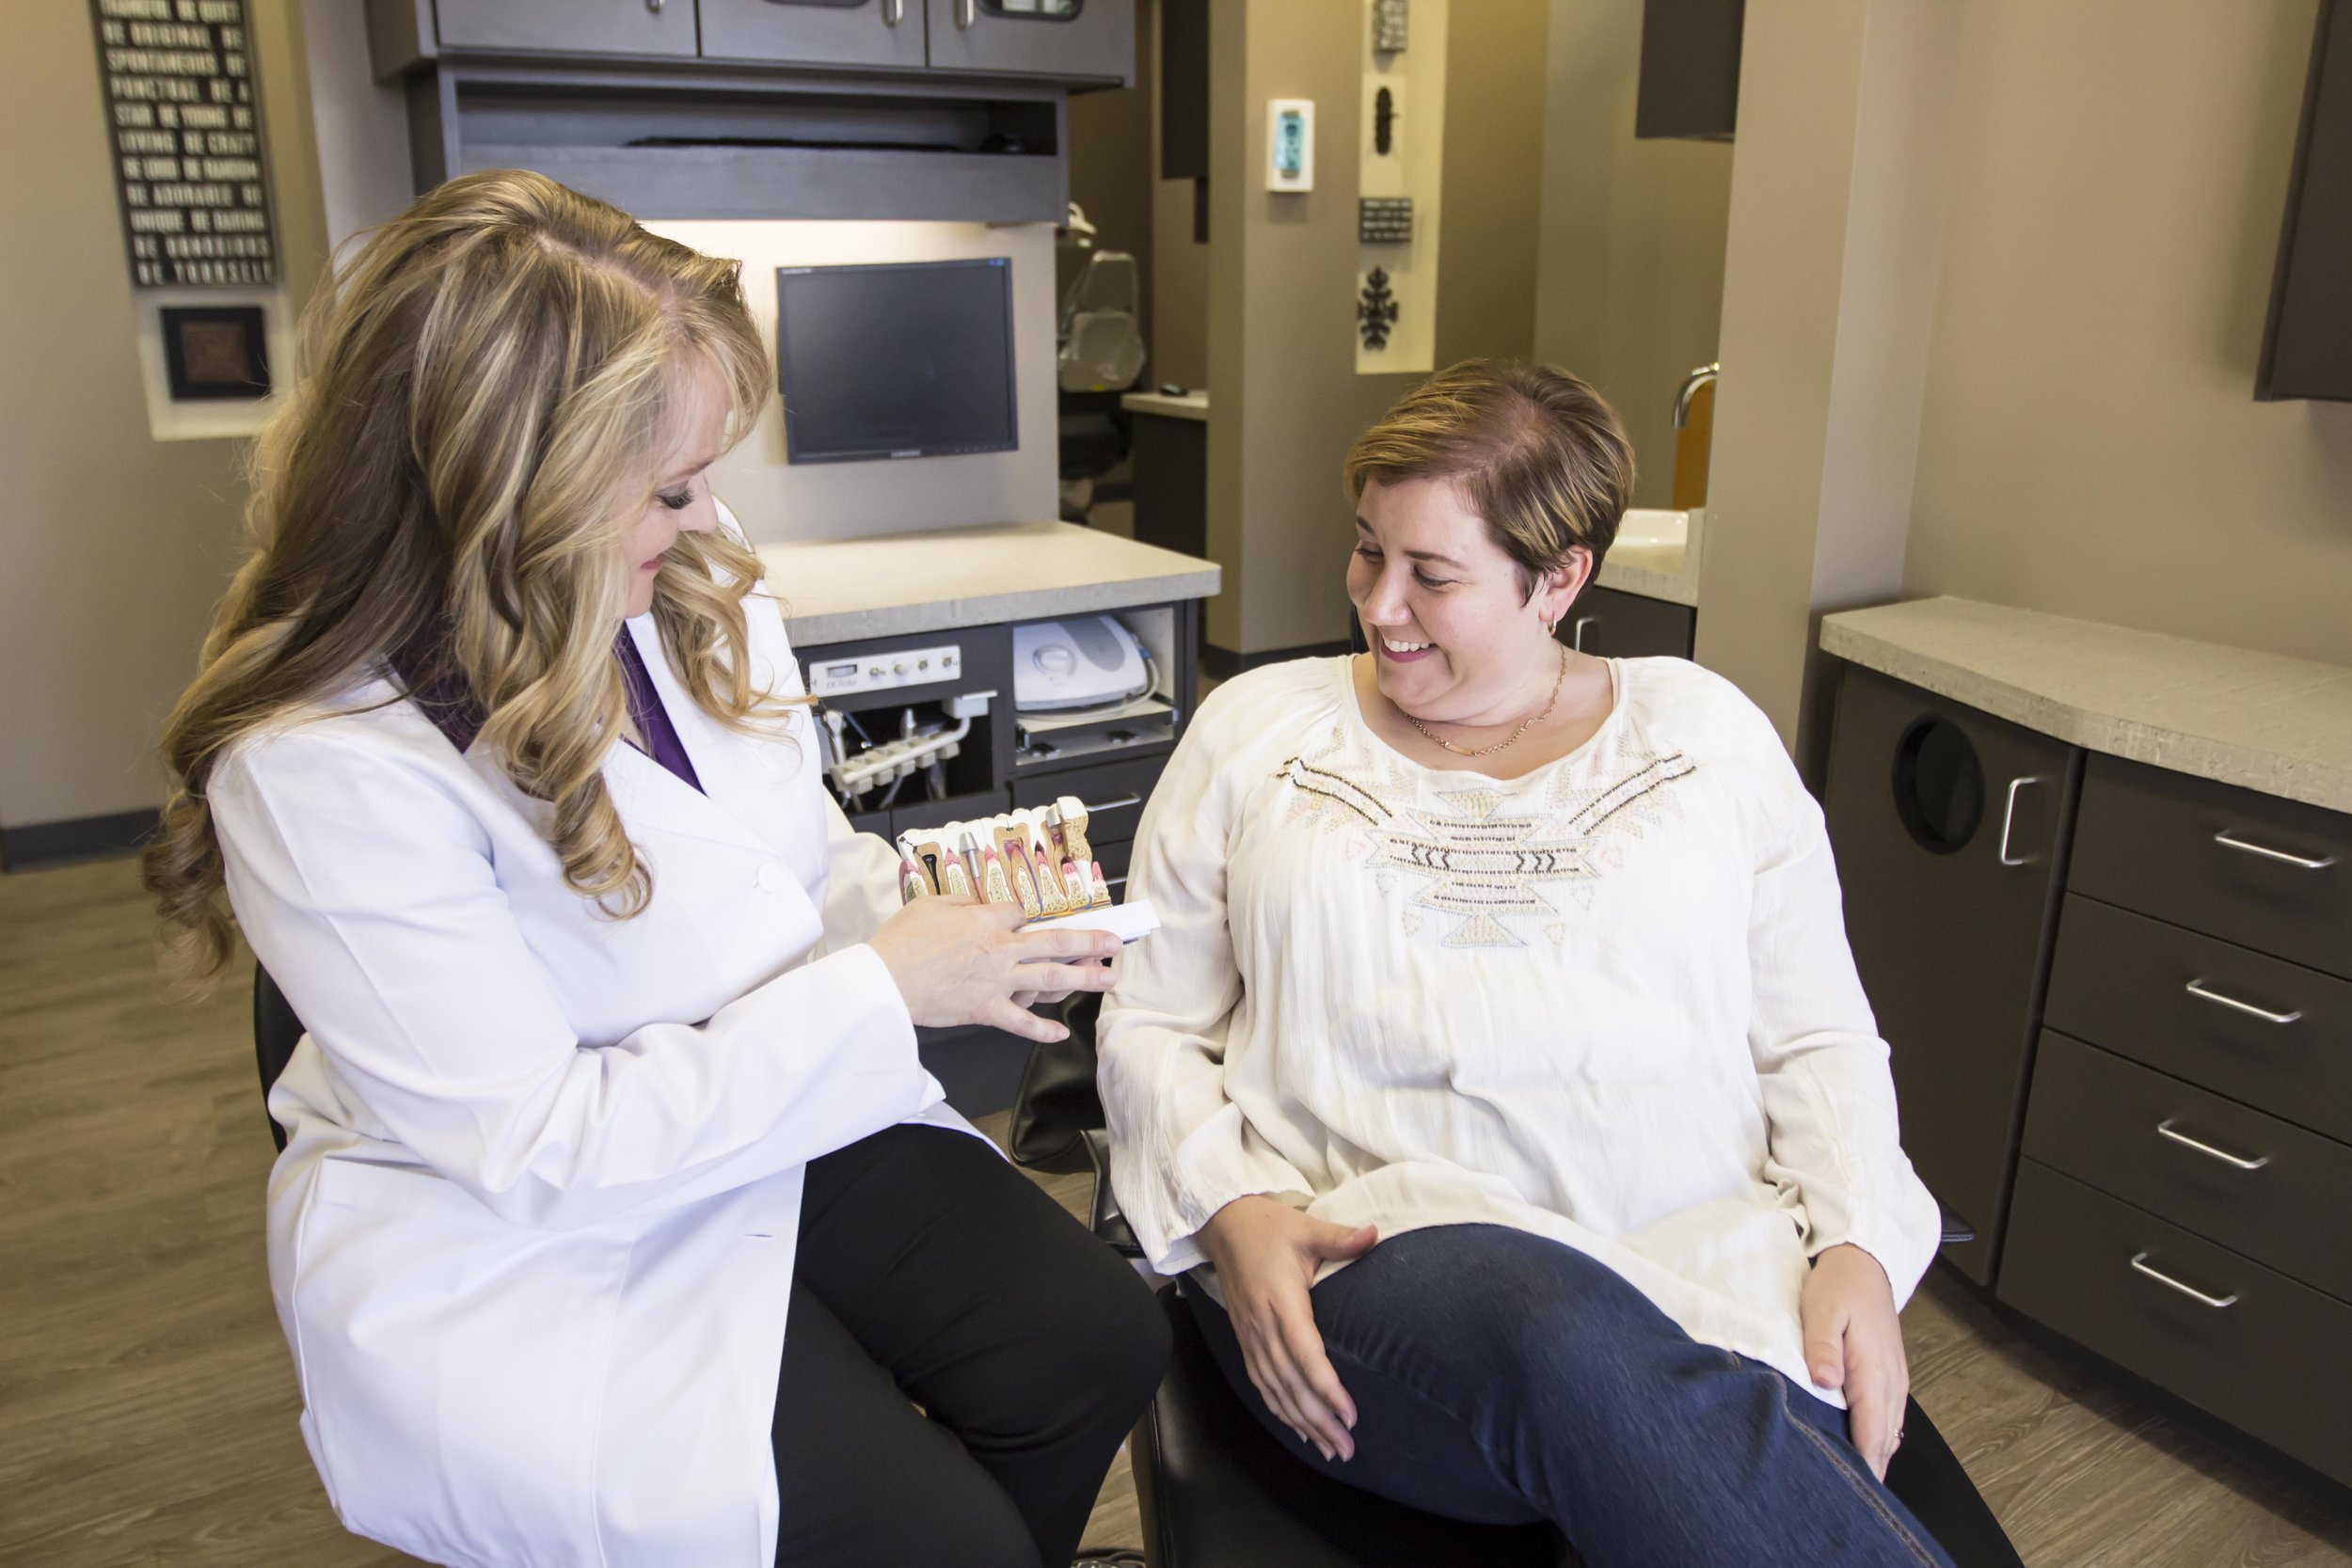 Dr. Guffey provides tooth replacement options.